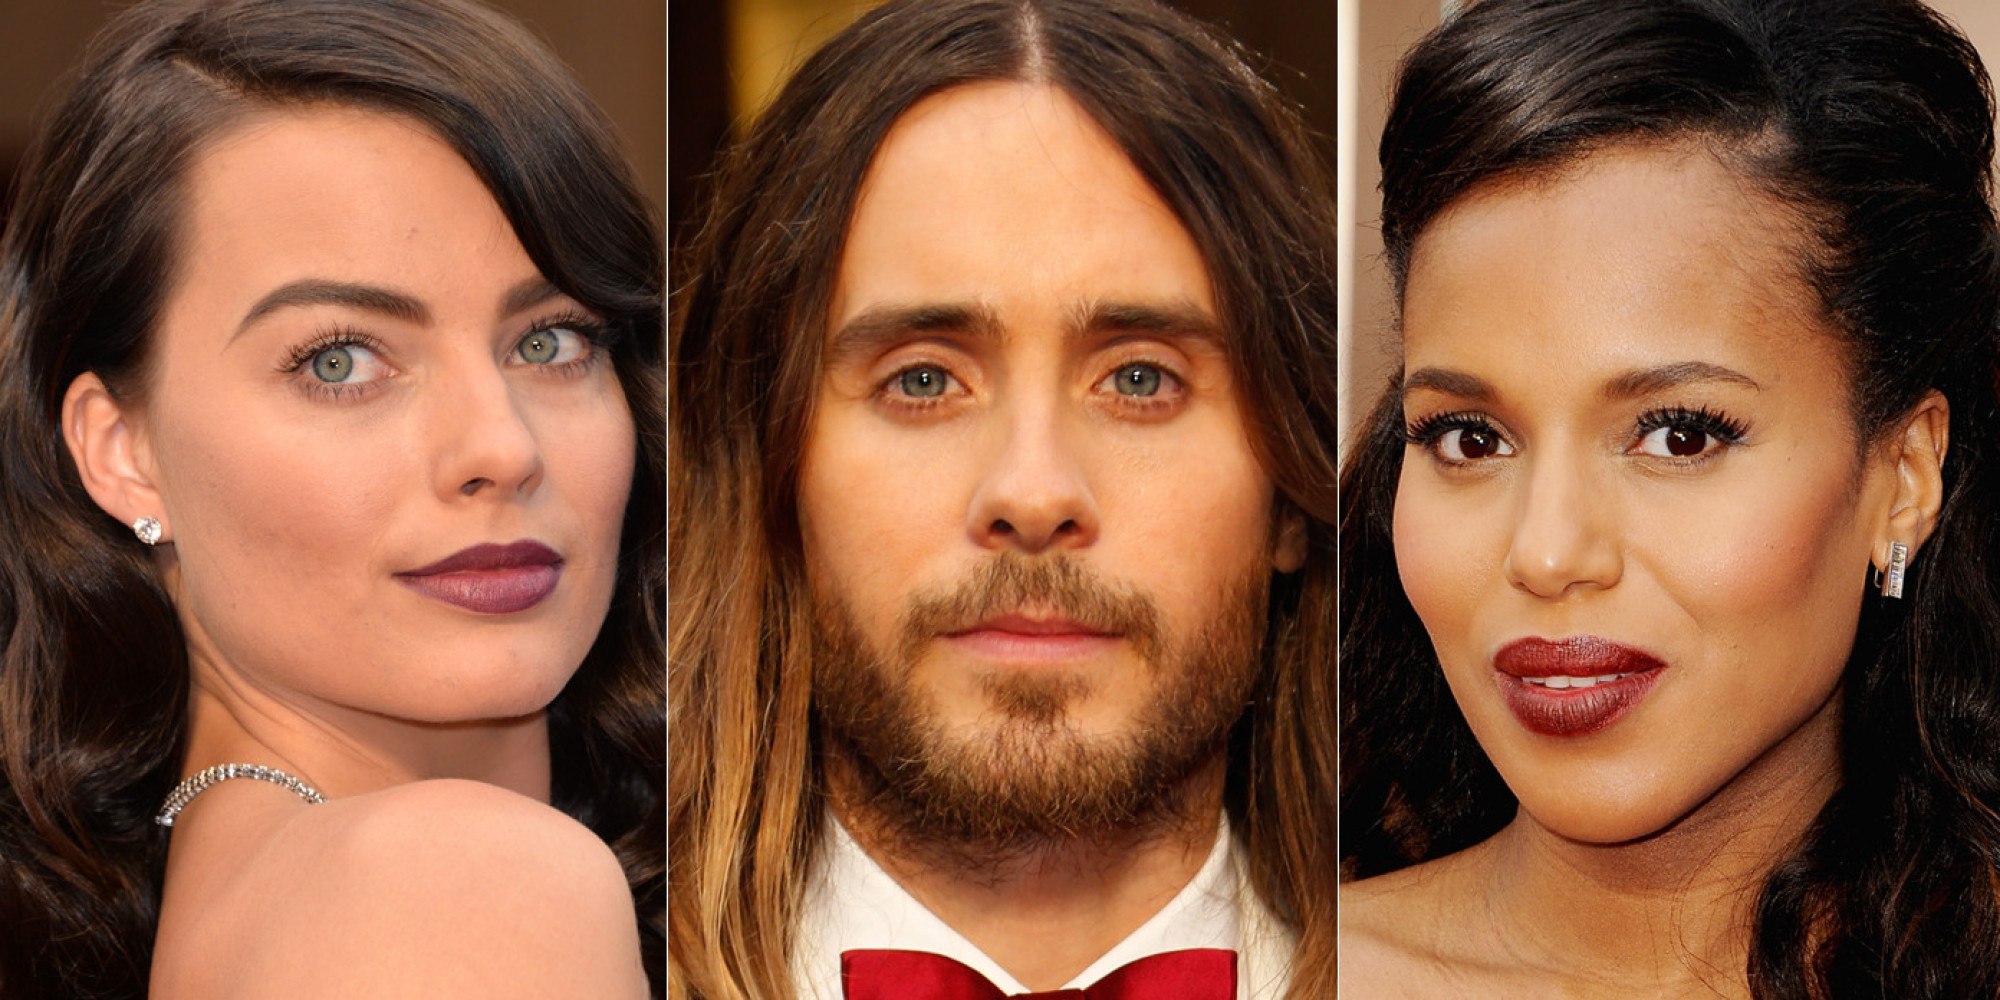 Oscars 2014 Hair And Makeup Was Full Of Many Surprises